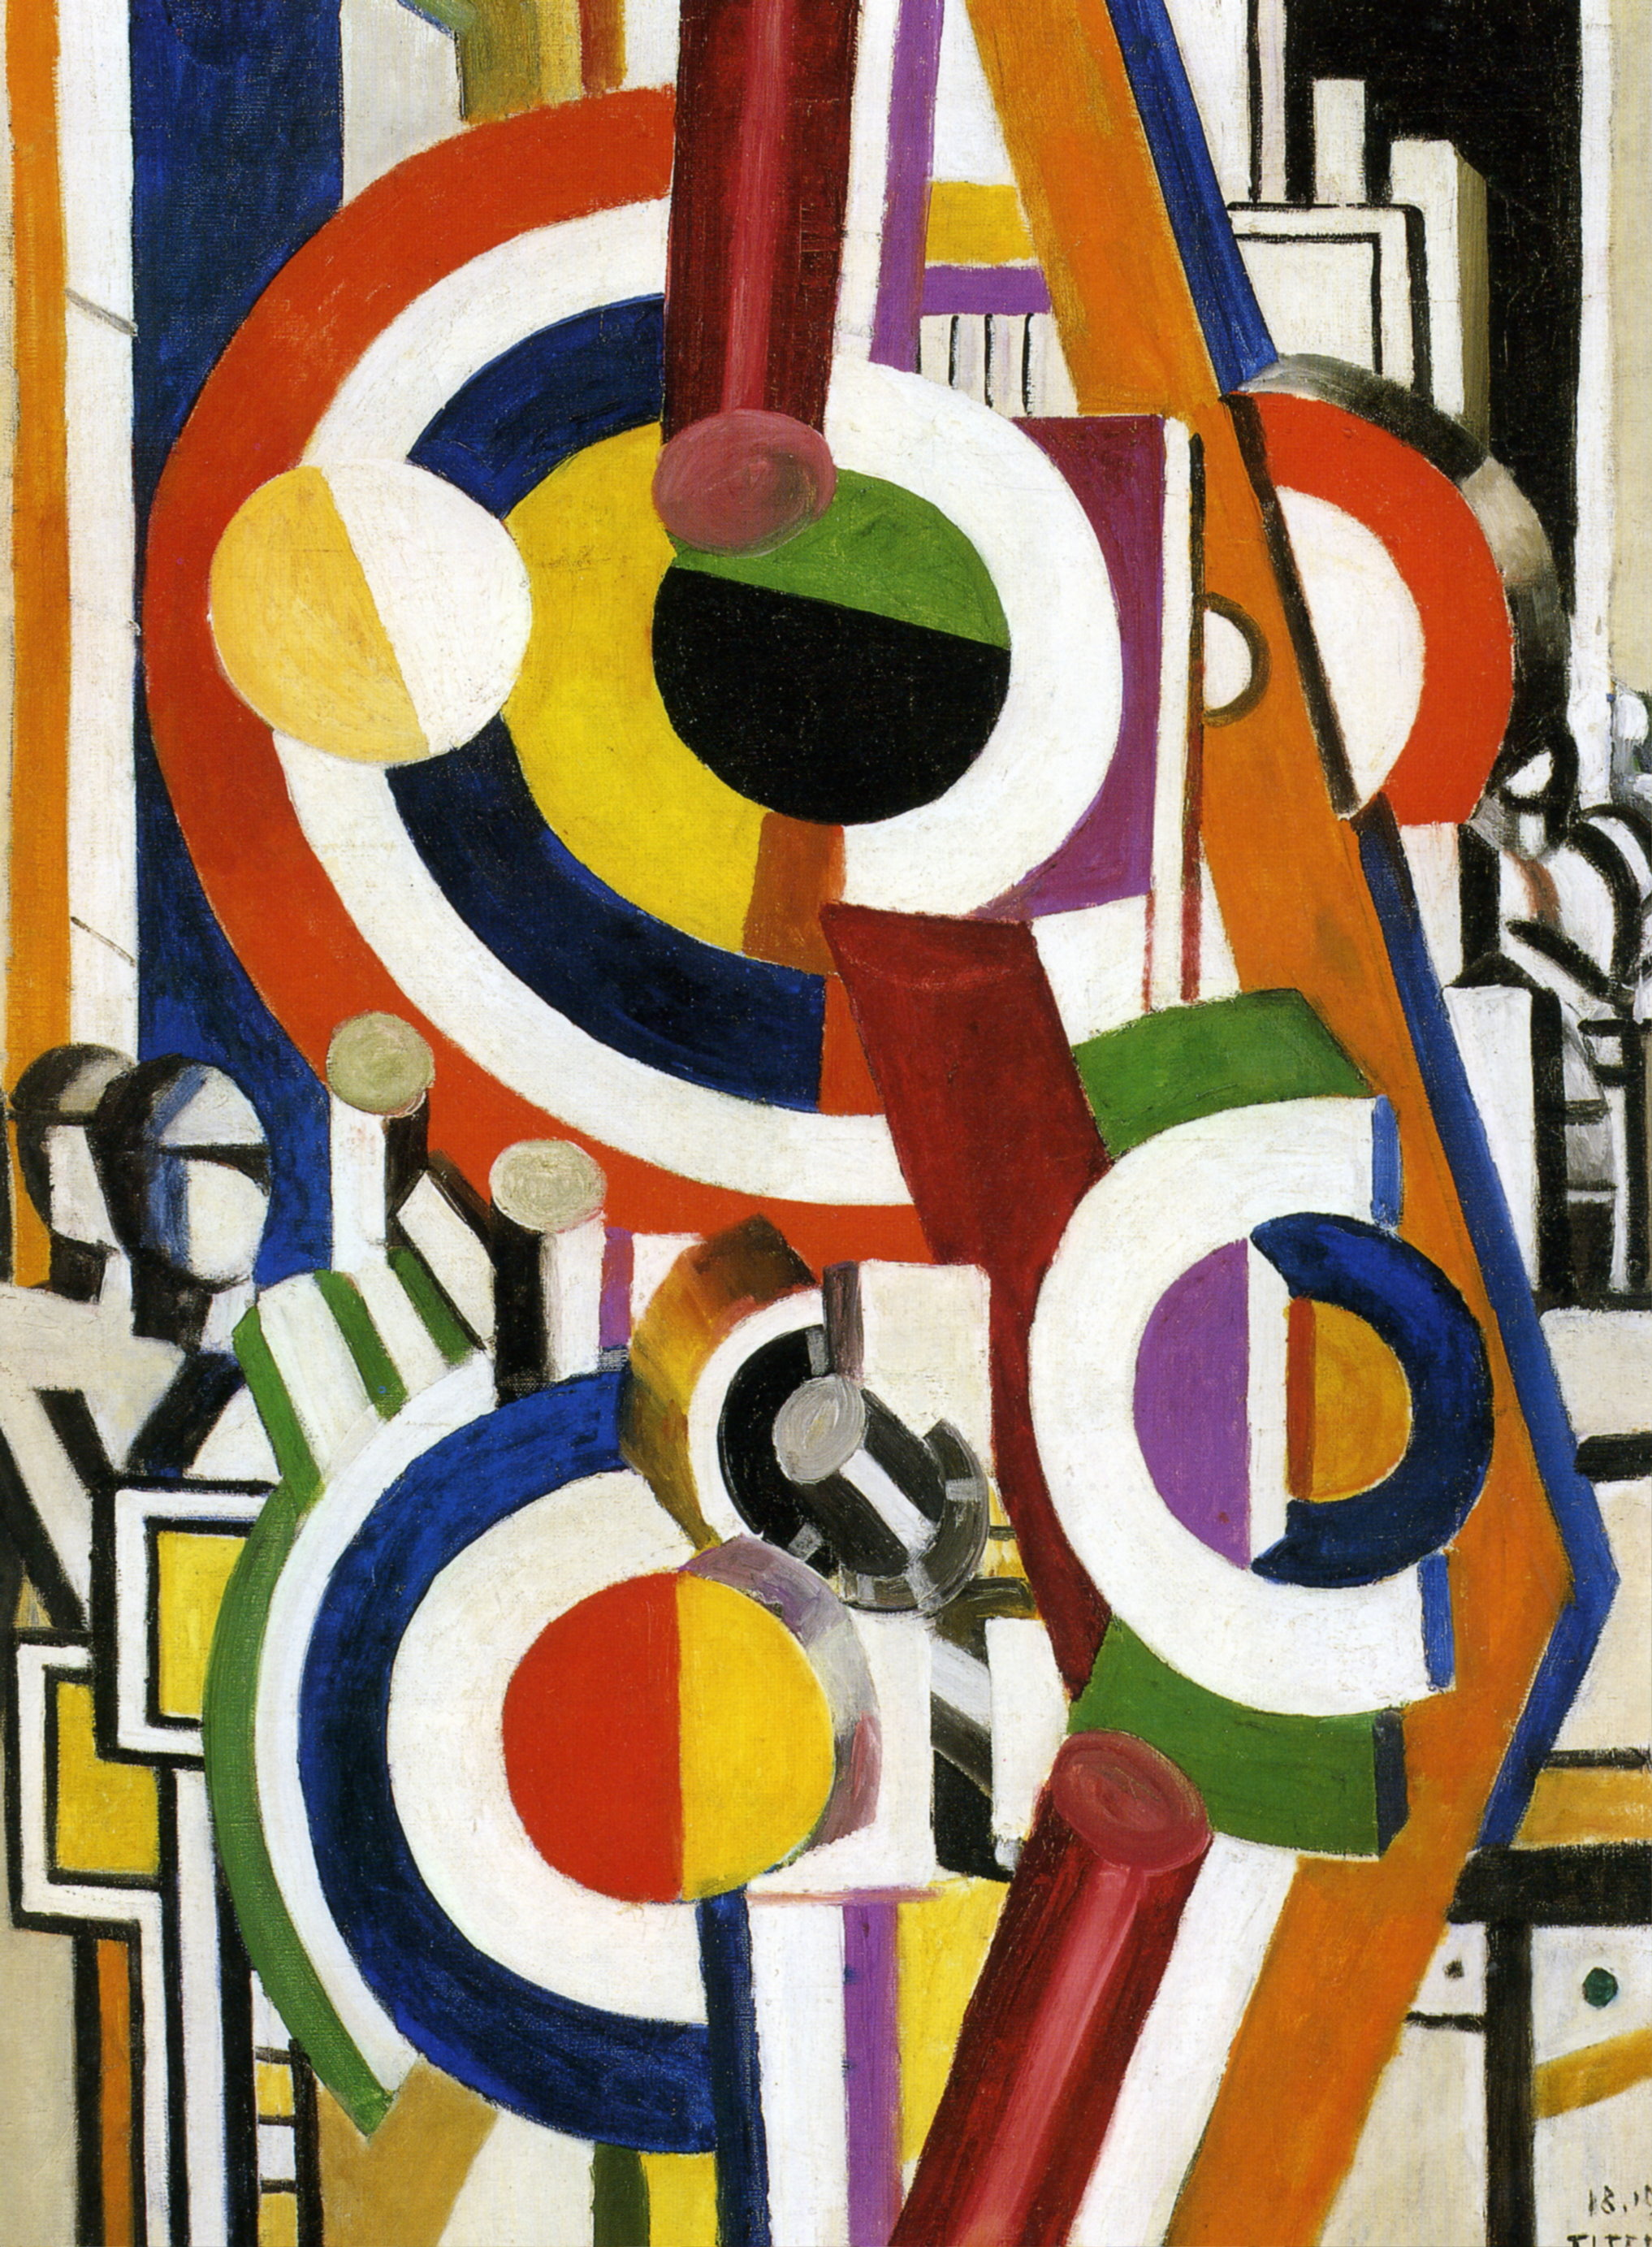 Fernand Léger's and Marcel Duchamp   Inventing Abstraction: 1910-1925, at MoMA discs 1919